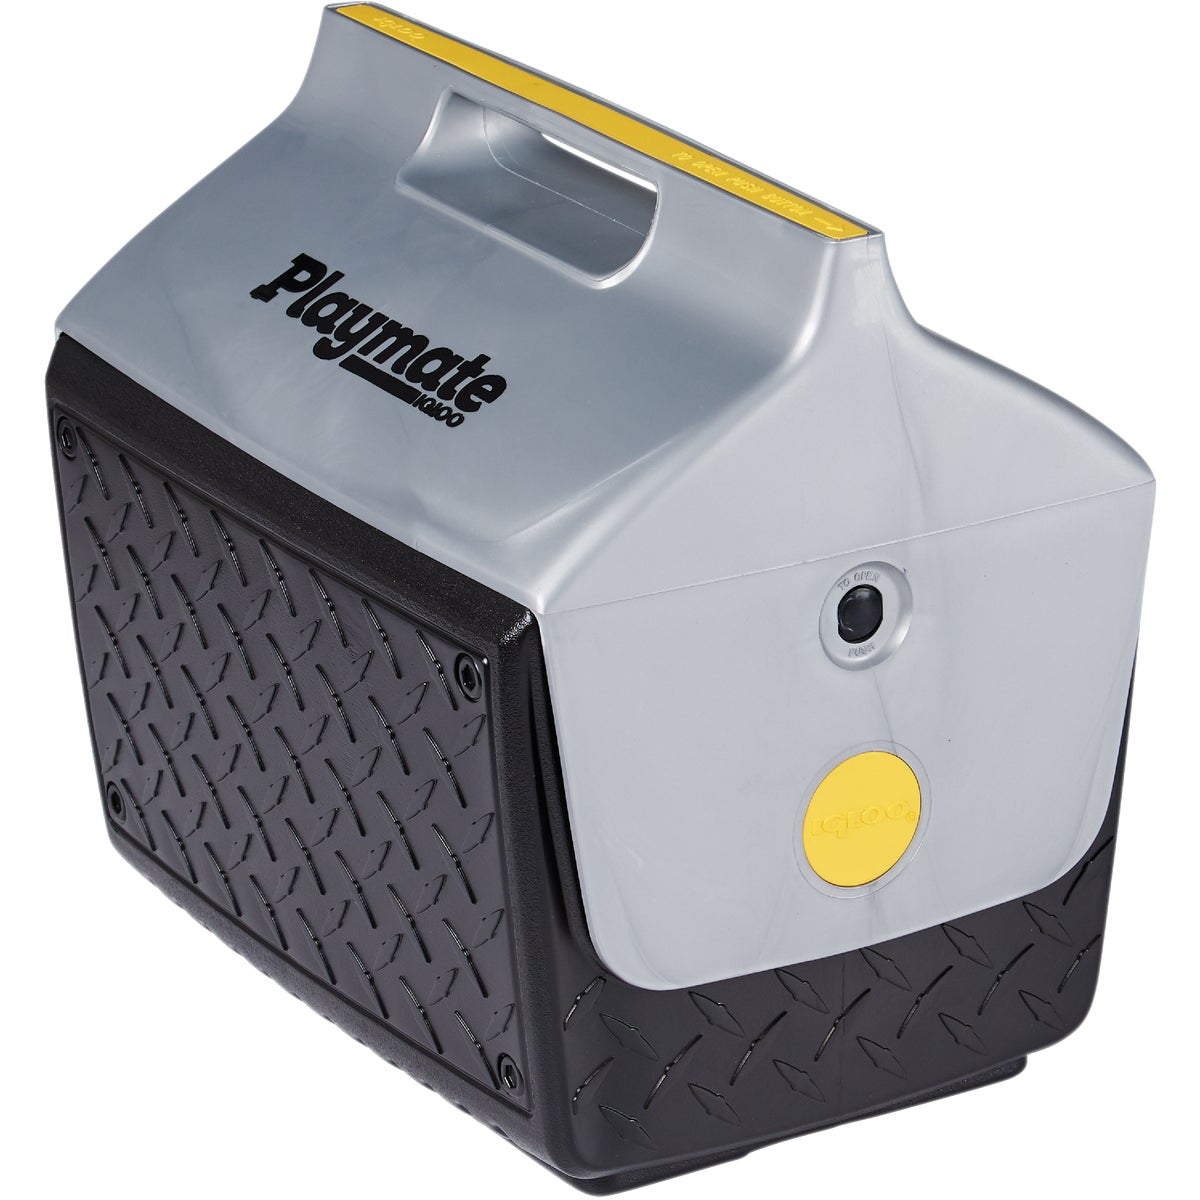 PLAYMATE THE BOSS COOLER - 43581 by Igloo Corp